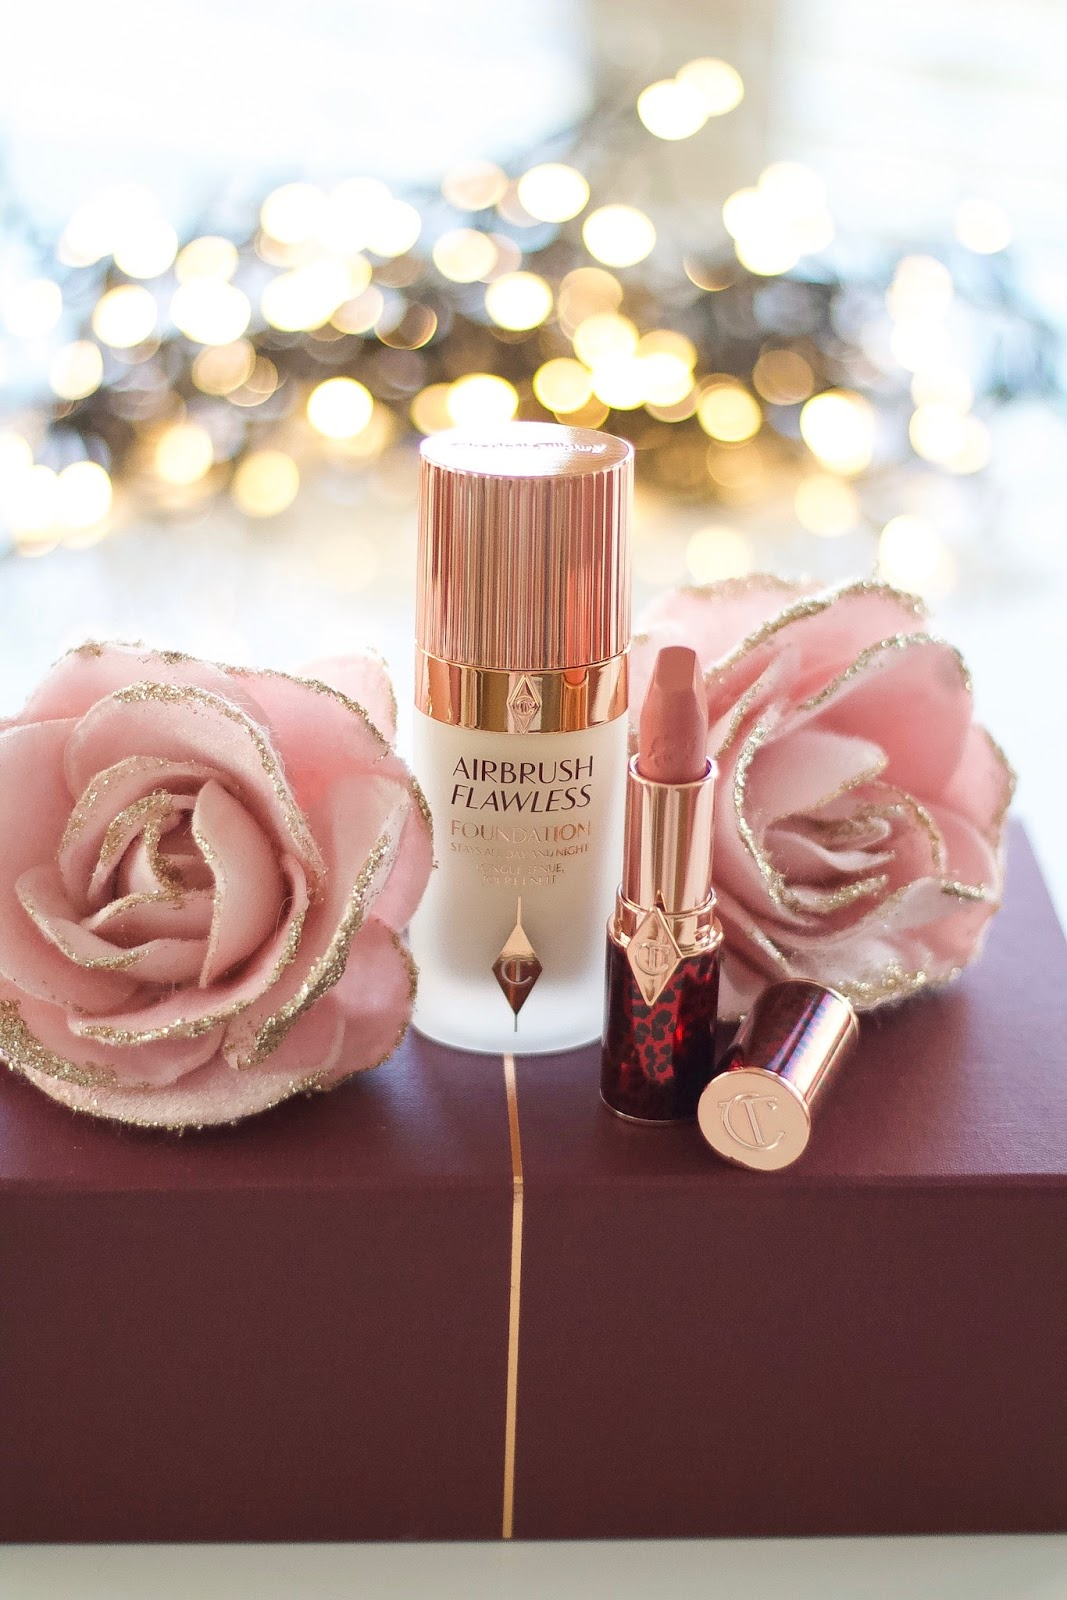 New in from Charlotte Tilbury